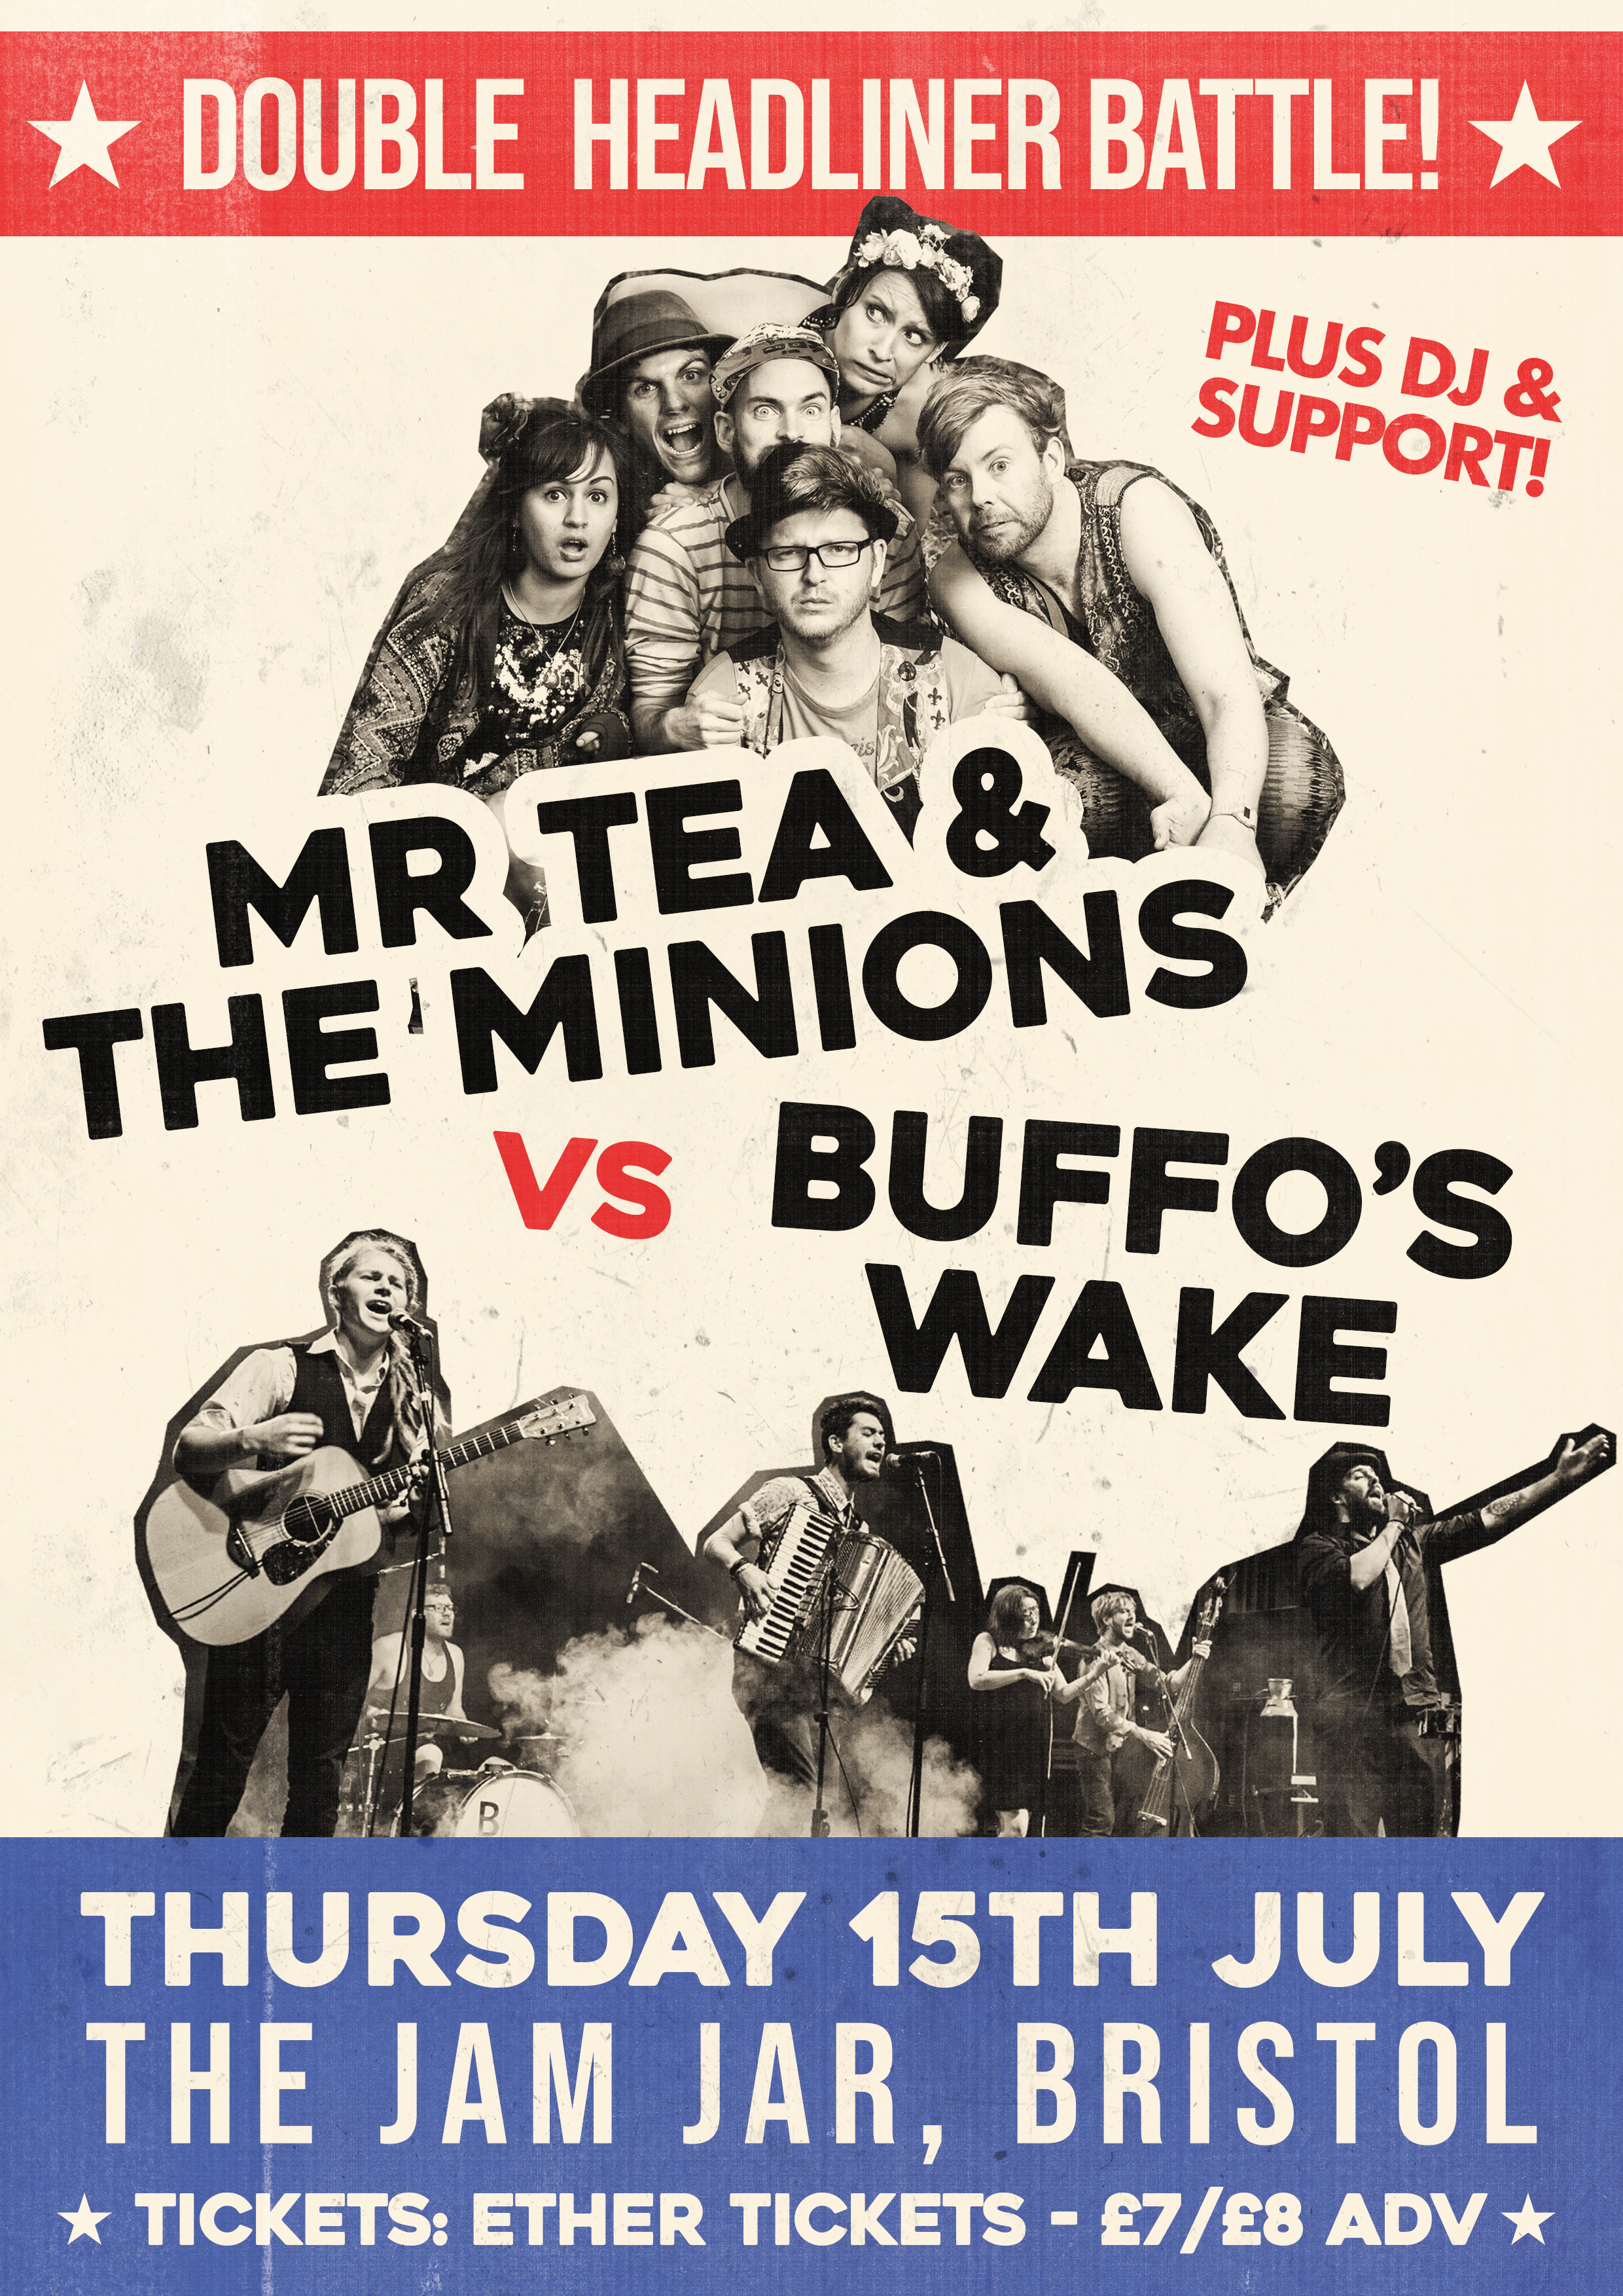 Event Poster For Mr Tea & The Minions Vs Buffos Wake